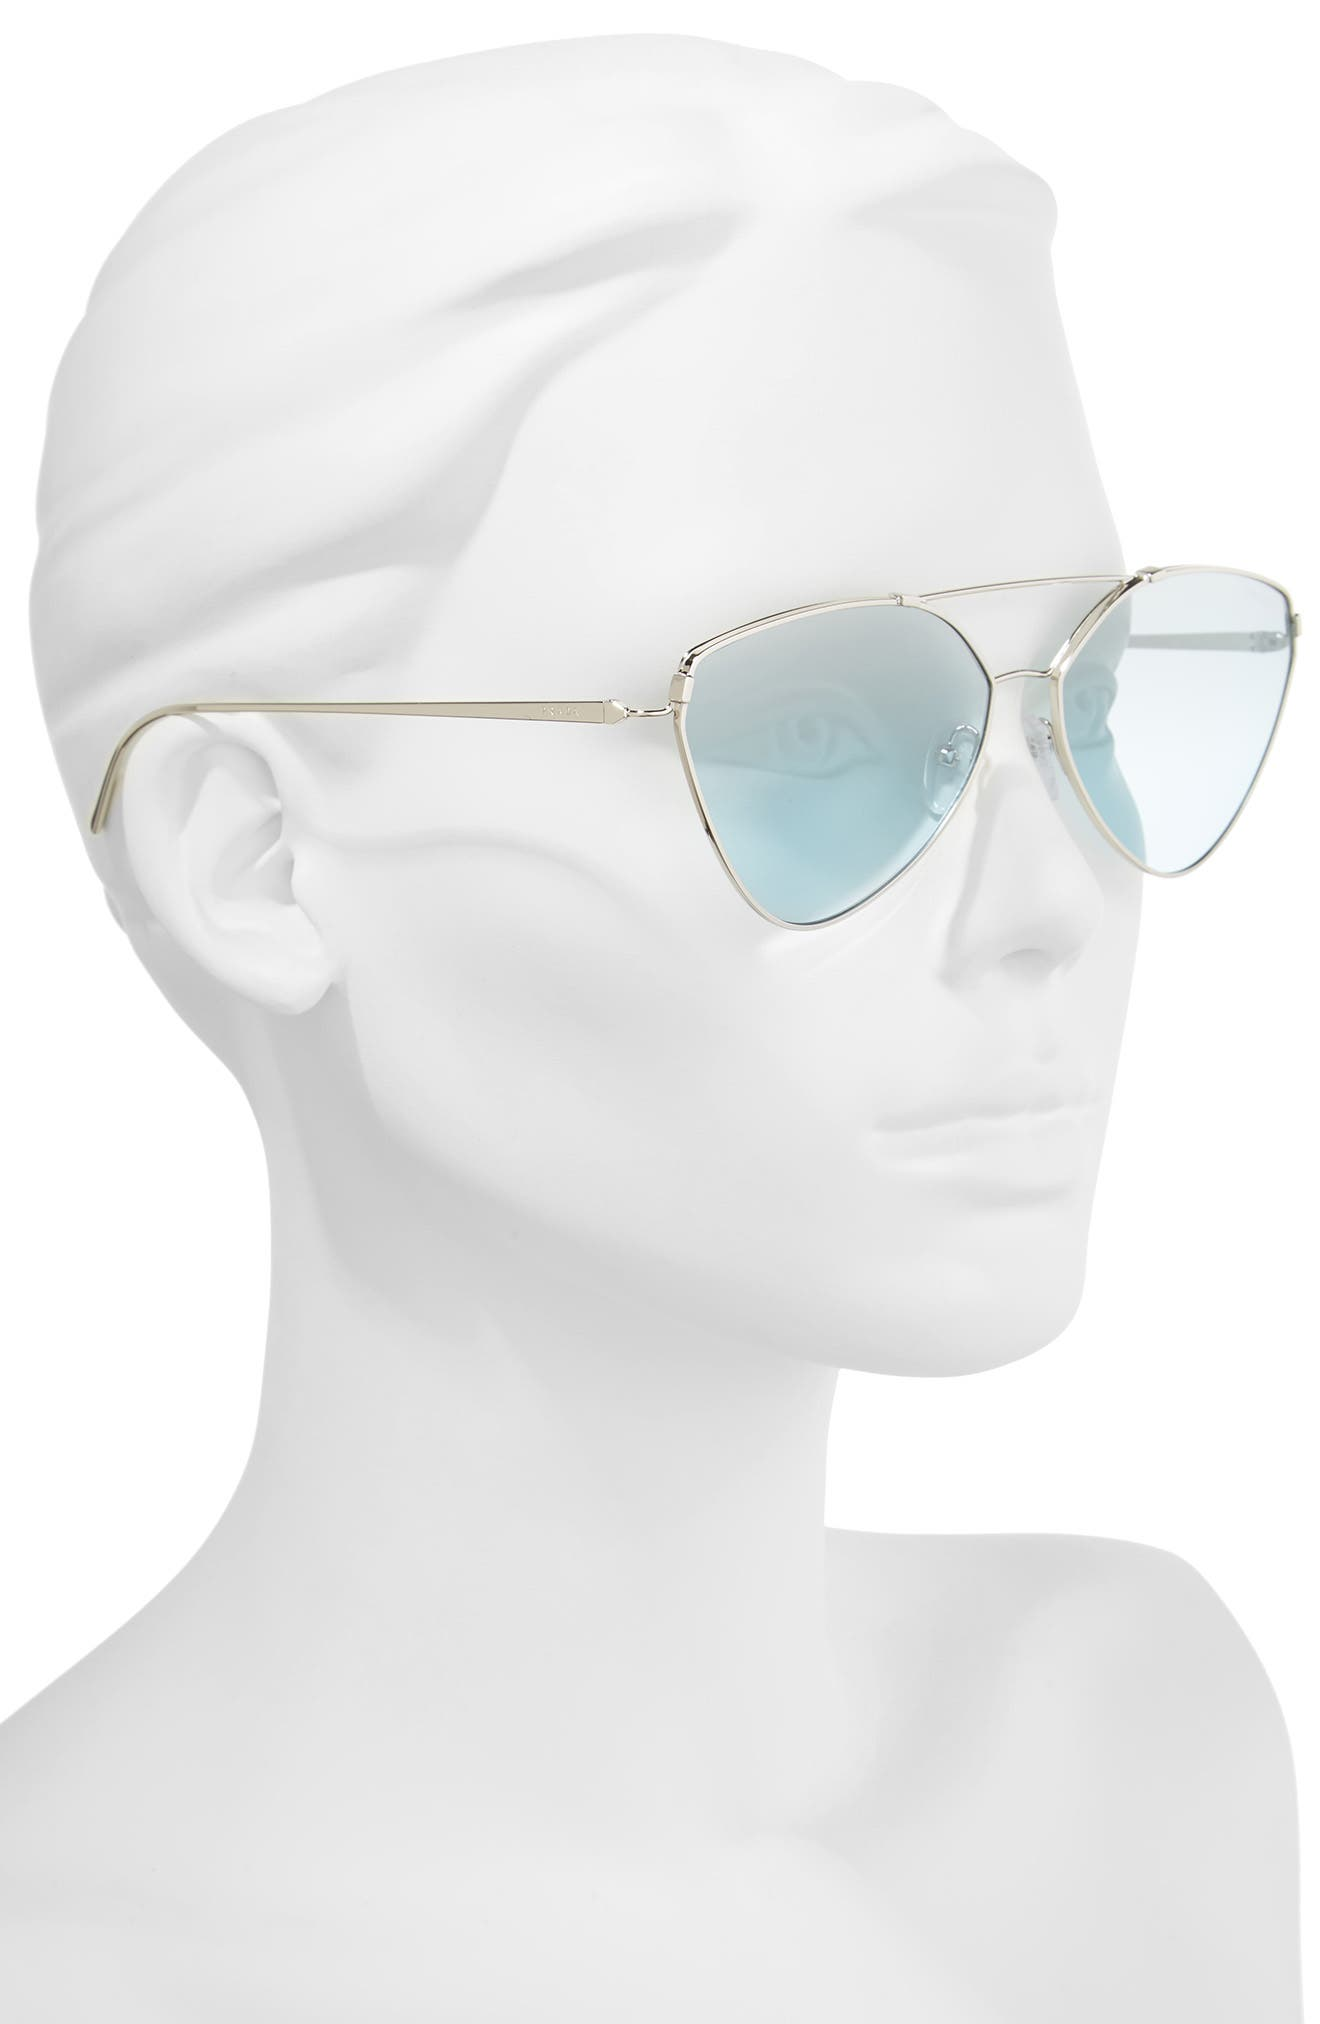 62mm Oversize Aviator Sunglasses,                             Alternate thumbnail 2, color,                             Silver